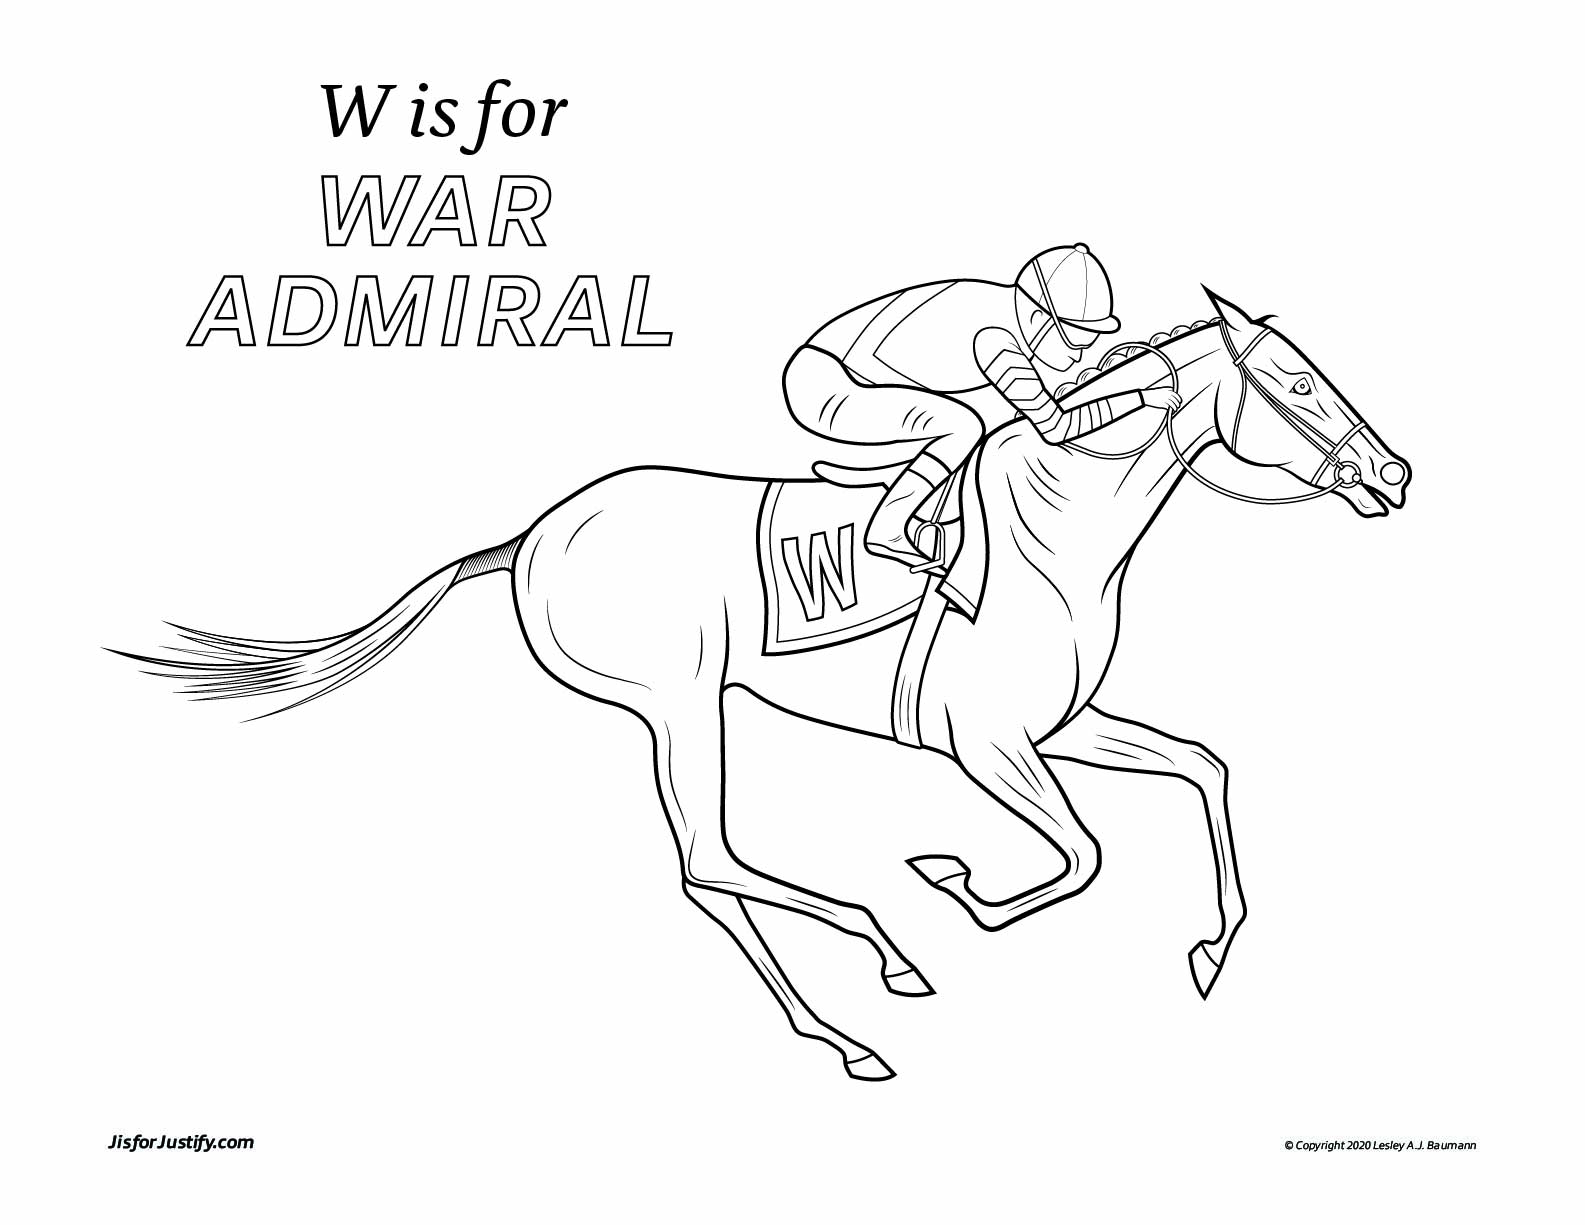 Coloring_Page_War_Admiral